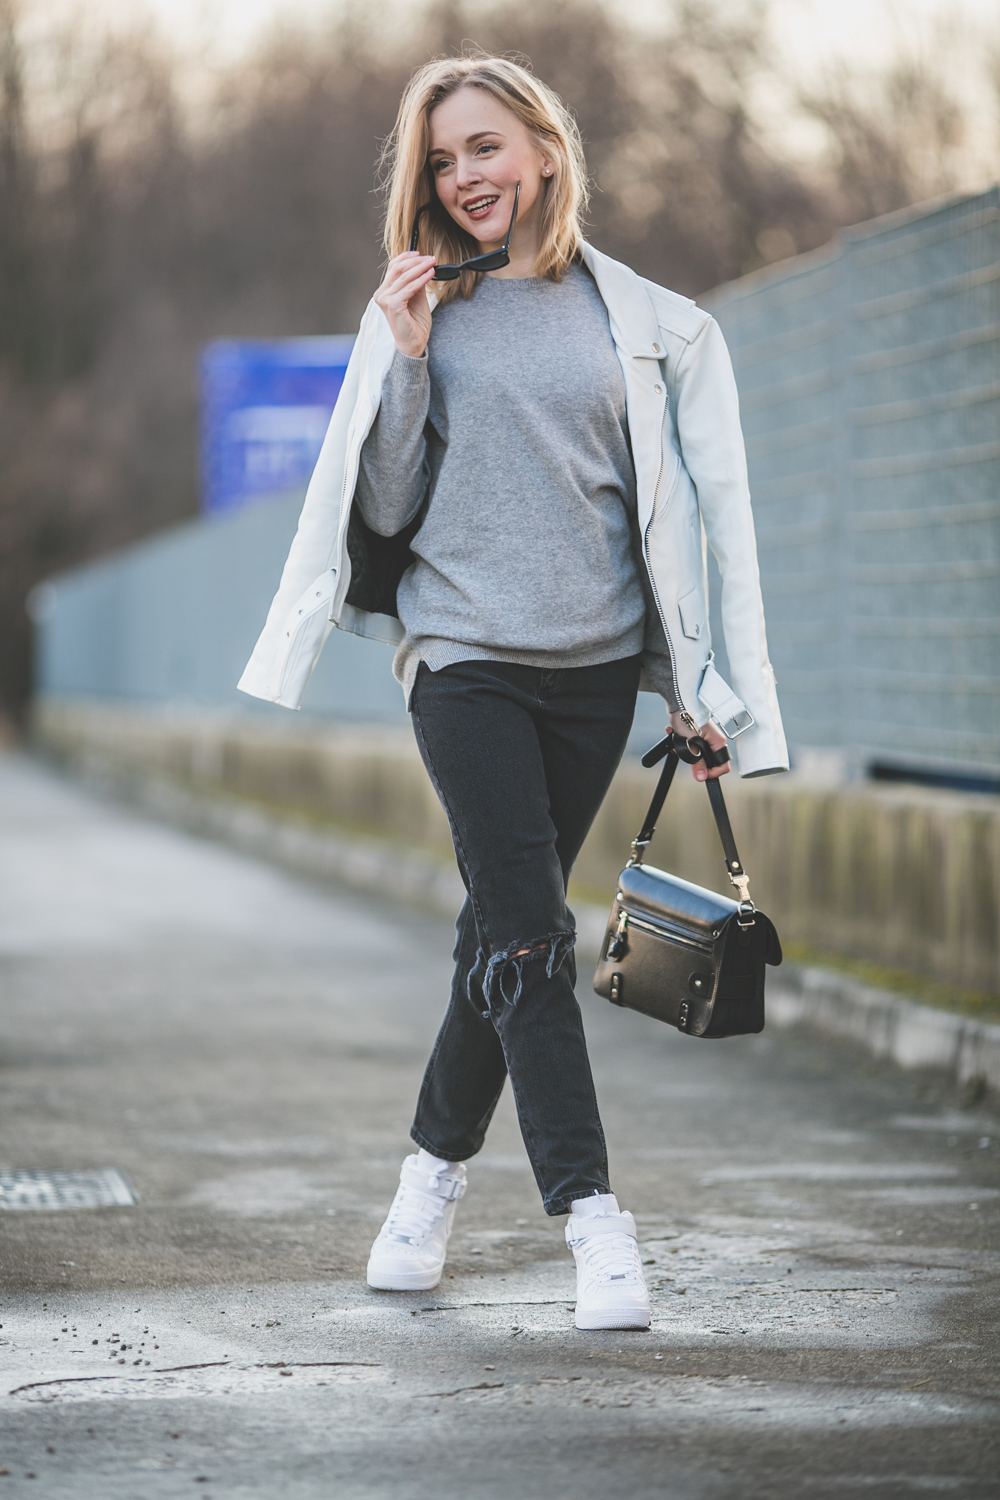 darya kamalova thecablook fashion lifestyle russian italian blogger wears asos total look with nike white air force and proenza schouler ps11 black bag-9815